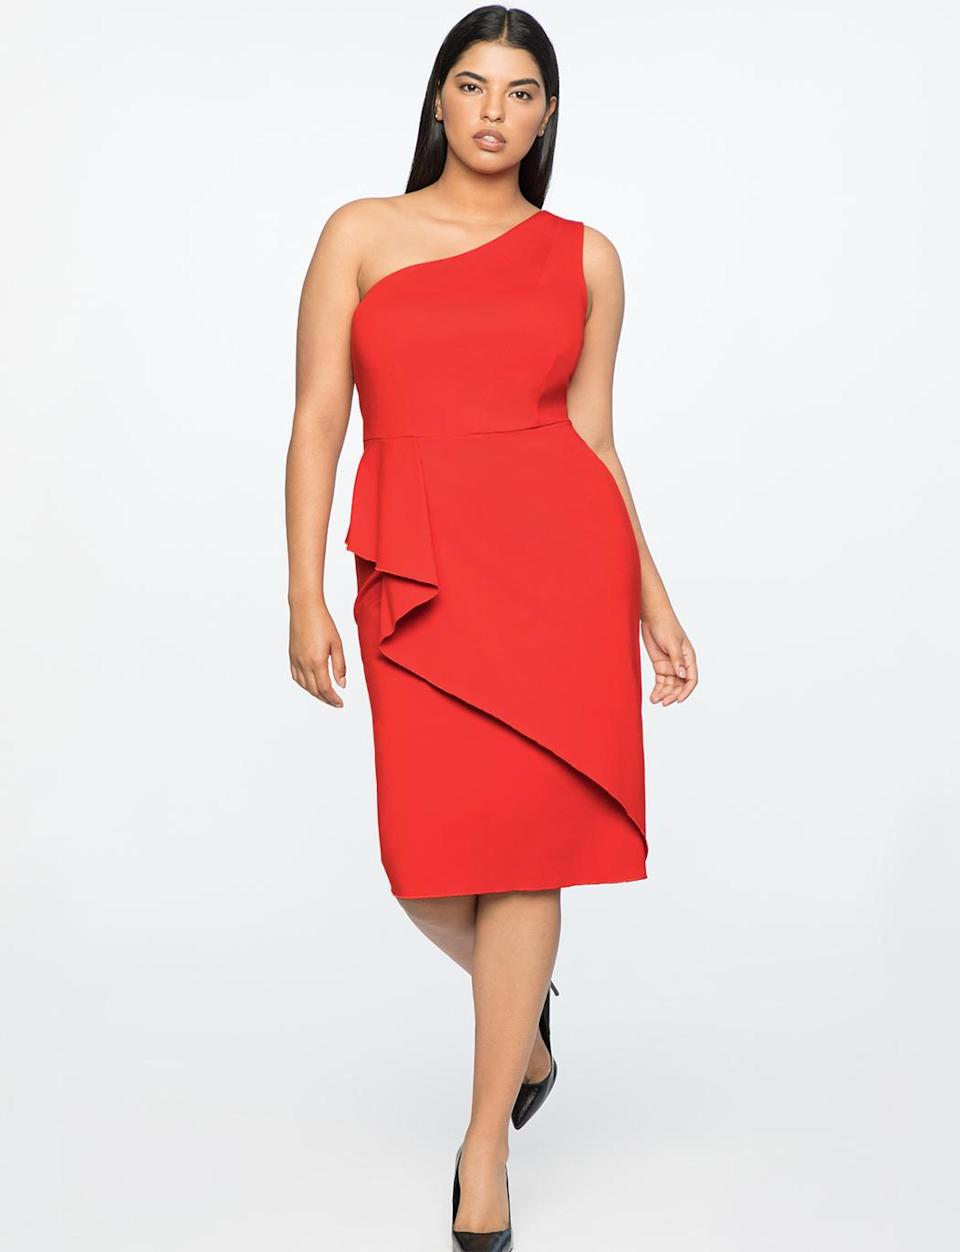 """<p>With its one-shoulder and asymmetrical ruffle, this is the perfect day-to-night dress. Wear it with a blazer during the day, and take it off for a chic evening look. <br>Asymmetrical one-shoulder dress, <a rel=""""nofollow noopener"""" href=""""https://fave.co/2qmZLTa"""" target=""""_blank"""" data-ylk=""""slk:eloquii.com"""" class=""""link rapid-noclick-resp"""">eloquii.com</a> </p>"""